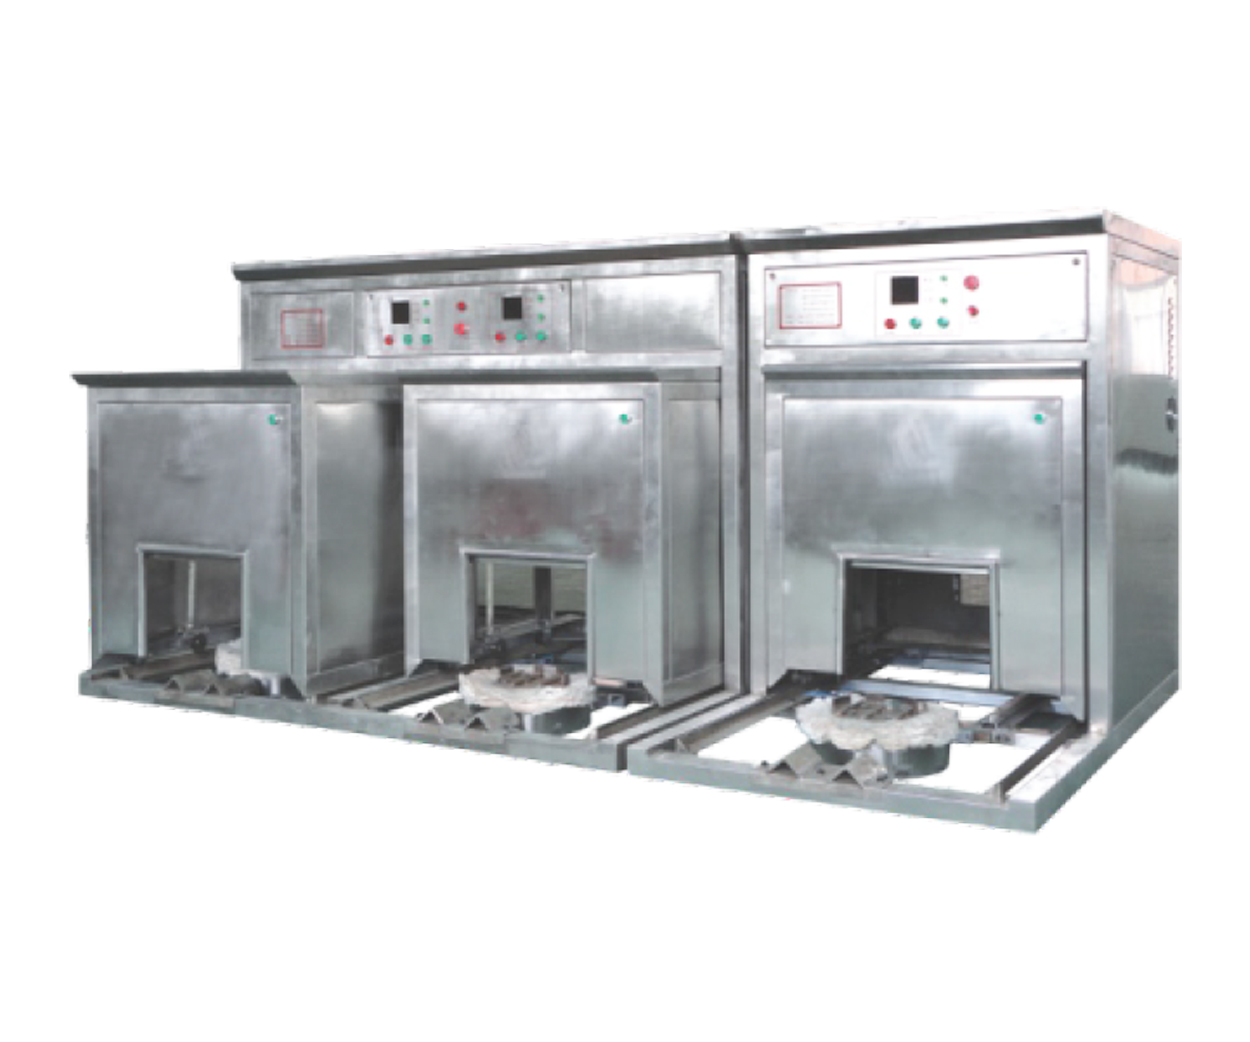 Stainless steel furnace